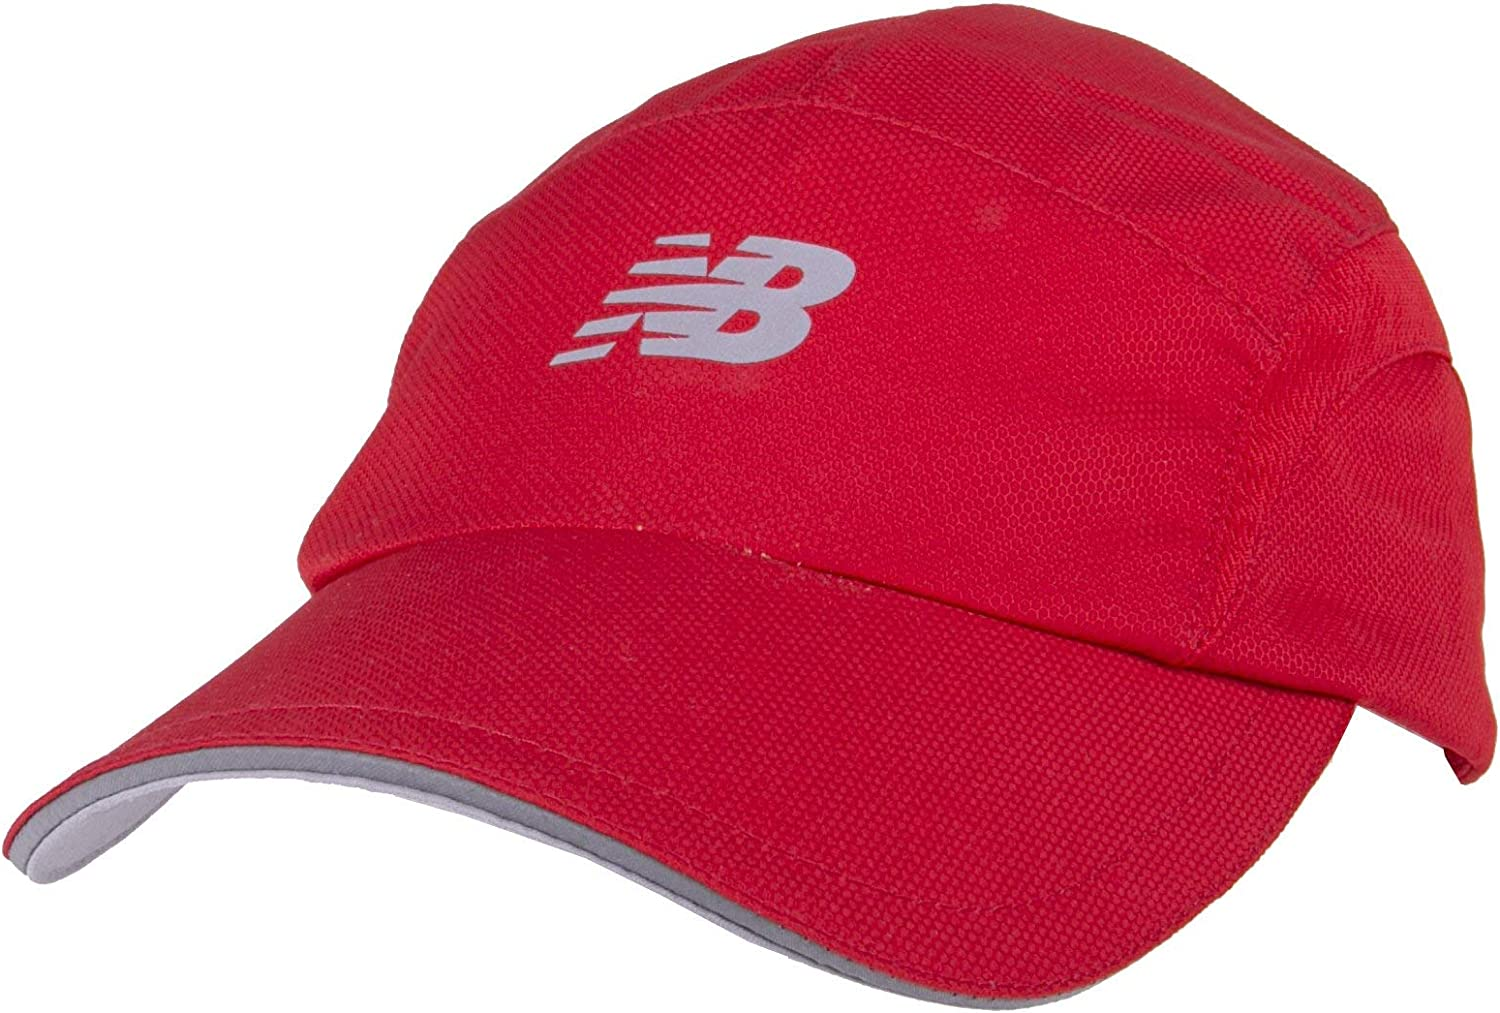 New Balance 5 Panel Performance Hat